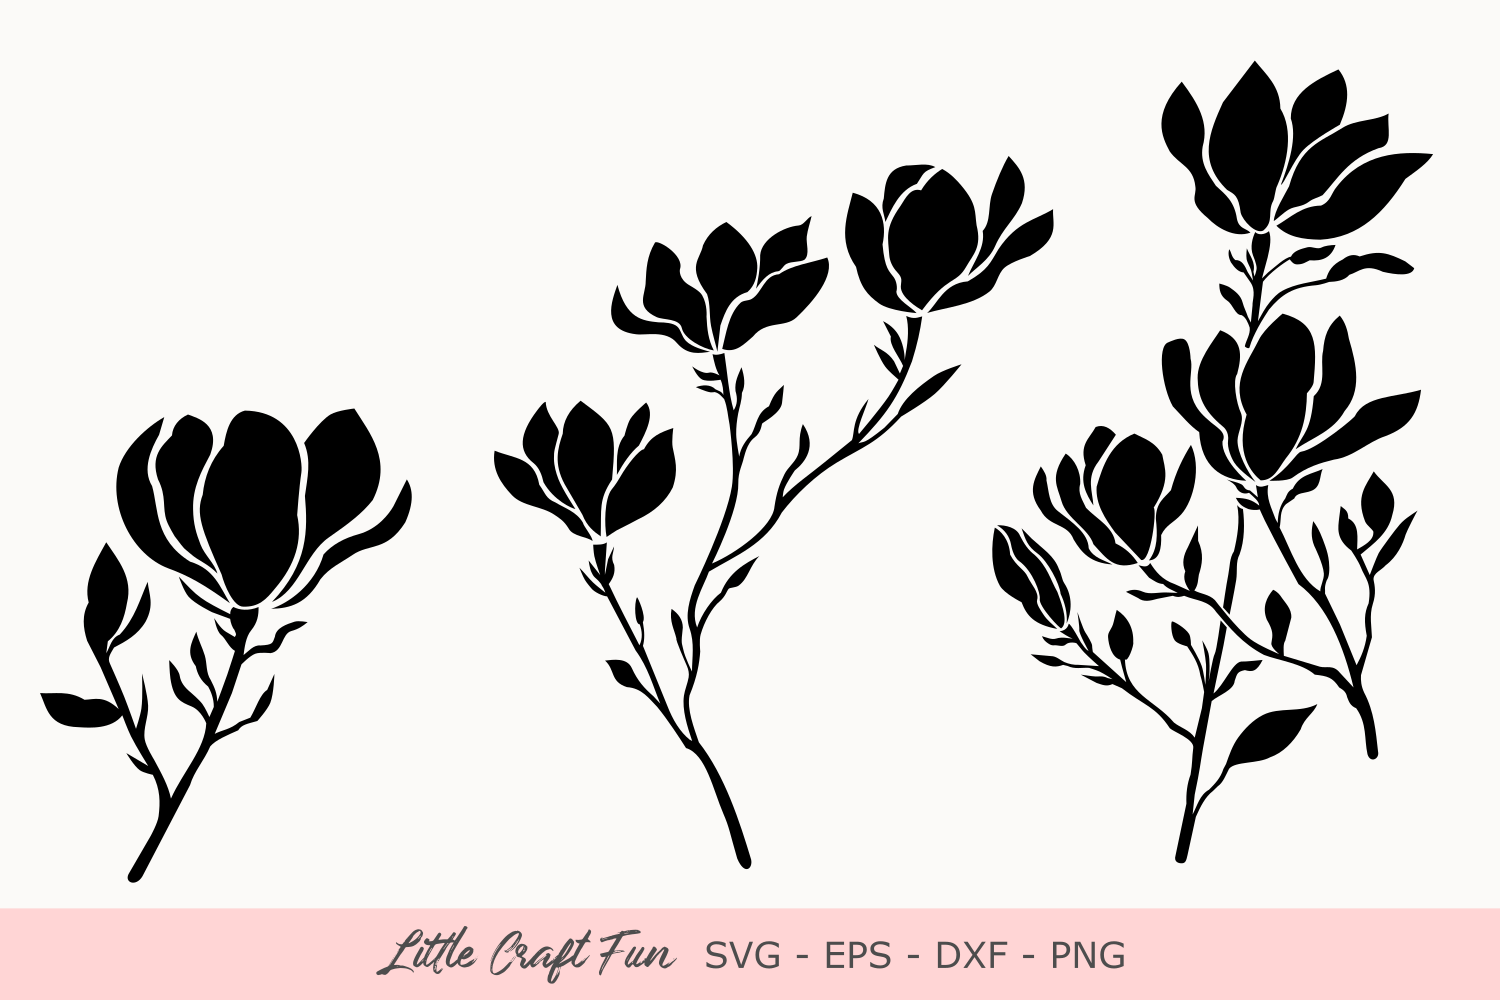 Magnolia Flowers Silhouette Svg Graphic By Little Craft Fun